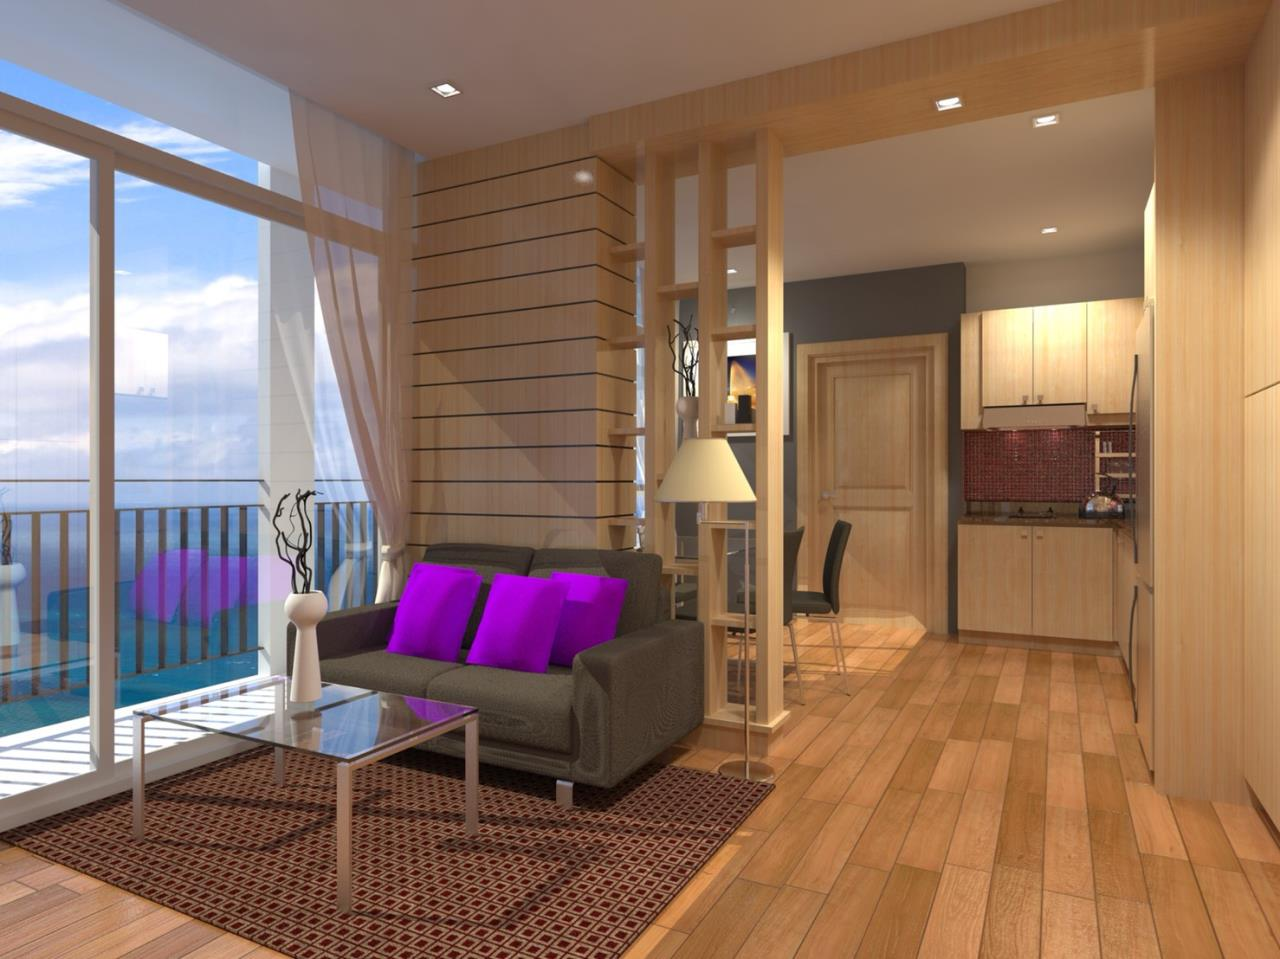 Signature Realty ( Thailand ) Co Ltd Agency's Furnished 1bedroom 46 sq.m condo with jacuzzi floor 2-10 at The Grand Jomtein Beach Pattaya 6